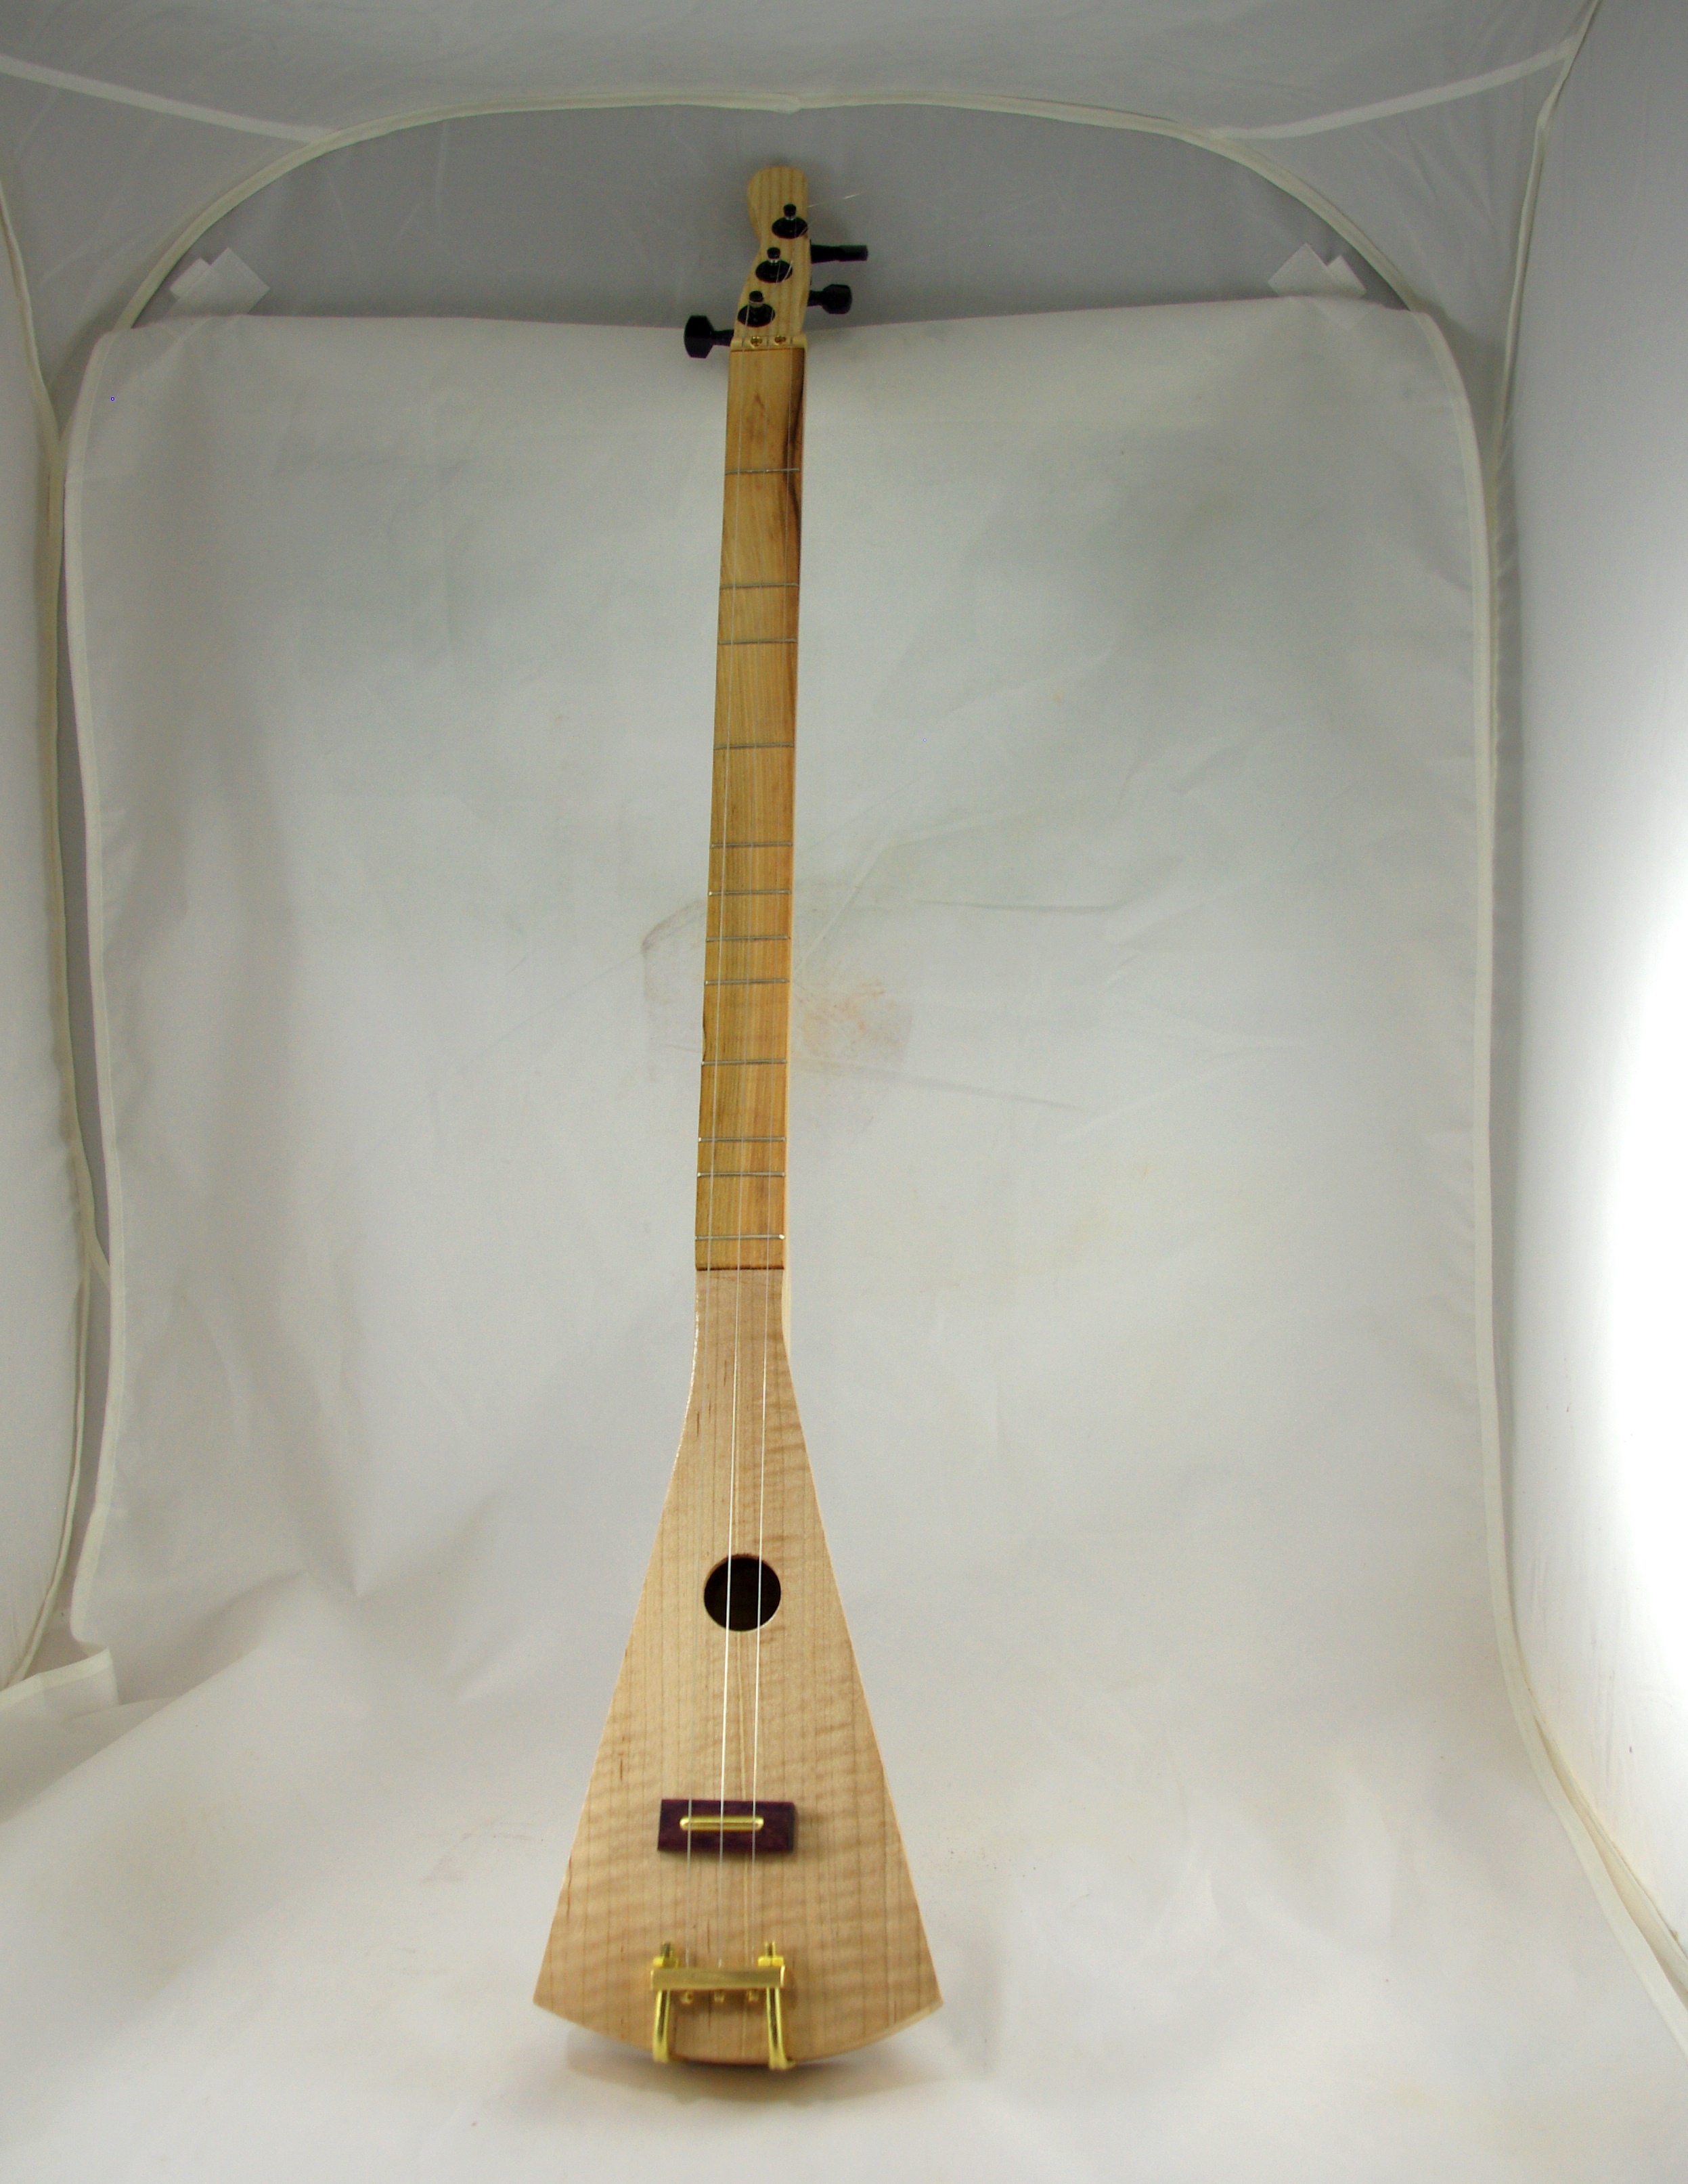 Picture of Final Tuning